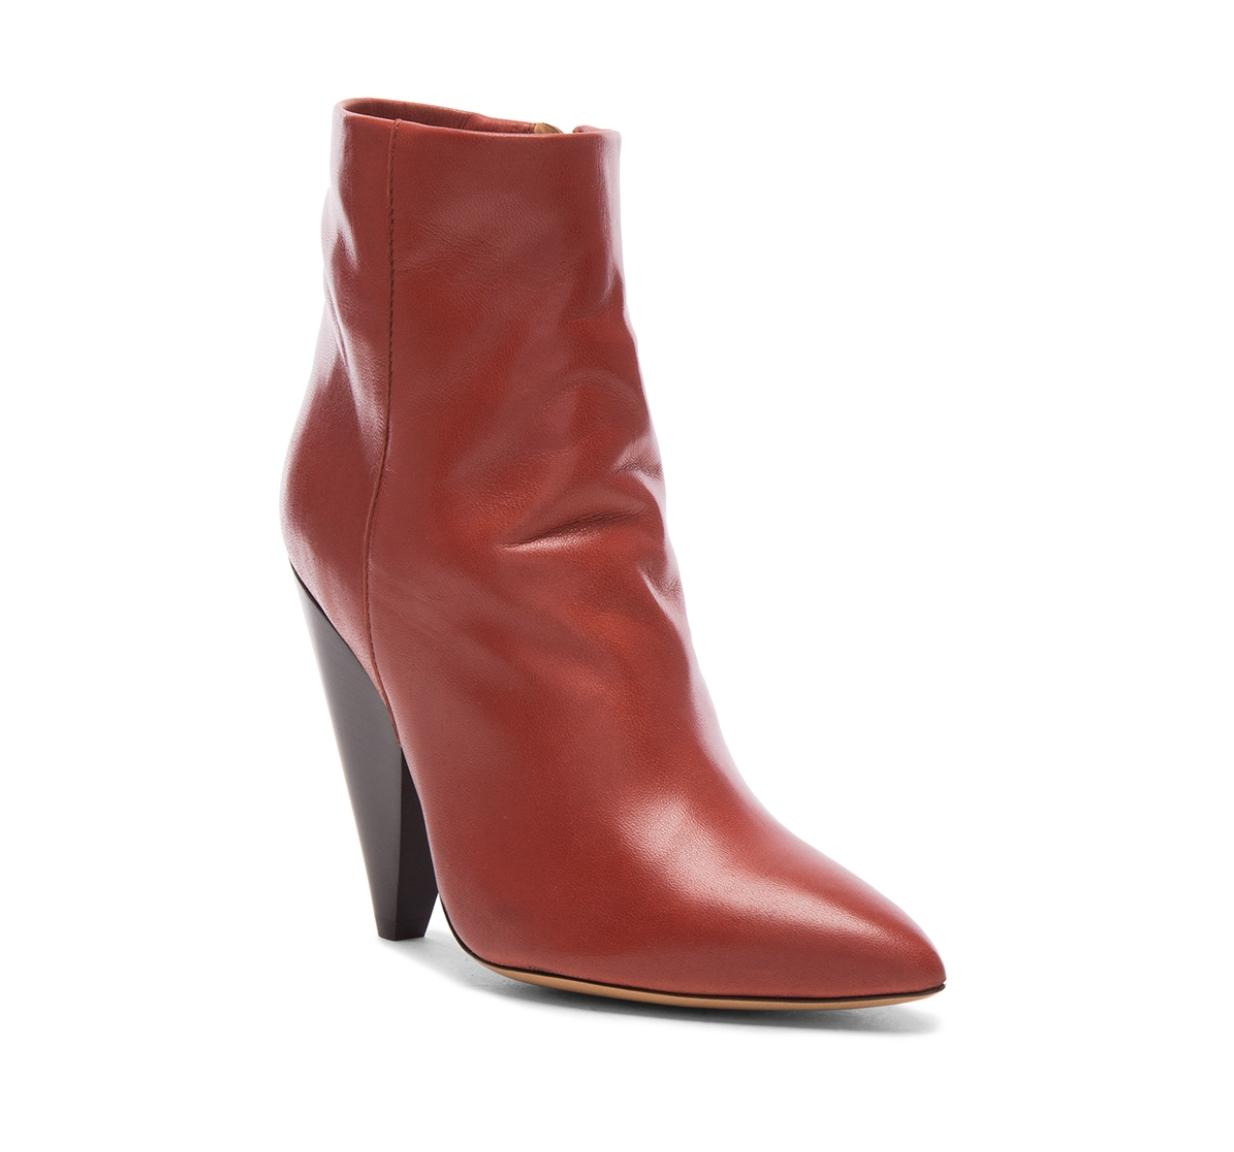 Isabel Marant Rust Brown Leydoni Ankle Style Id Bo012217p032s Boots/Booties Size EU 38 (Approx. US 8) Regular (M, B)